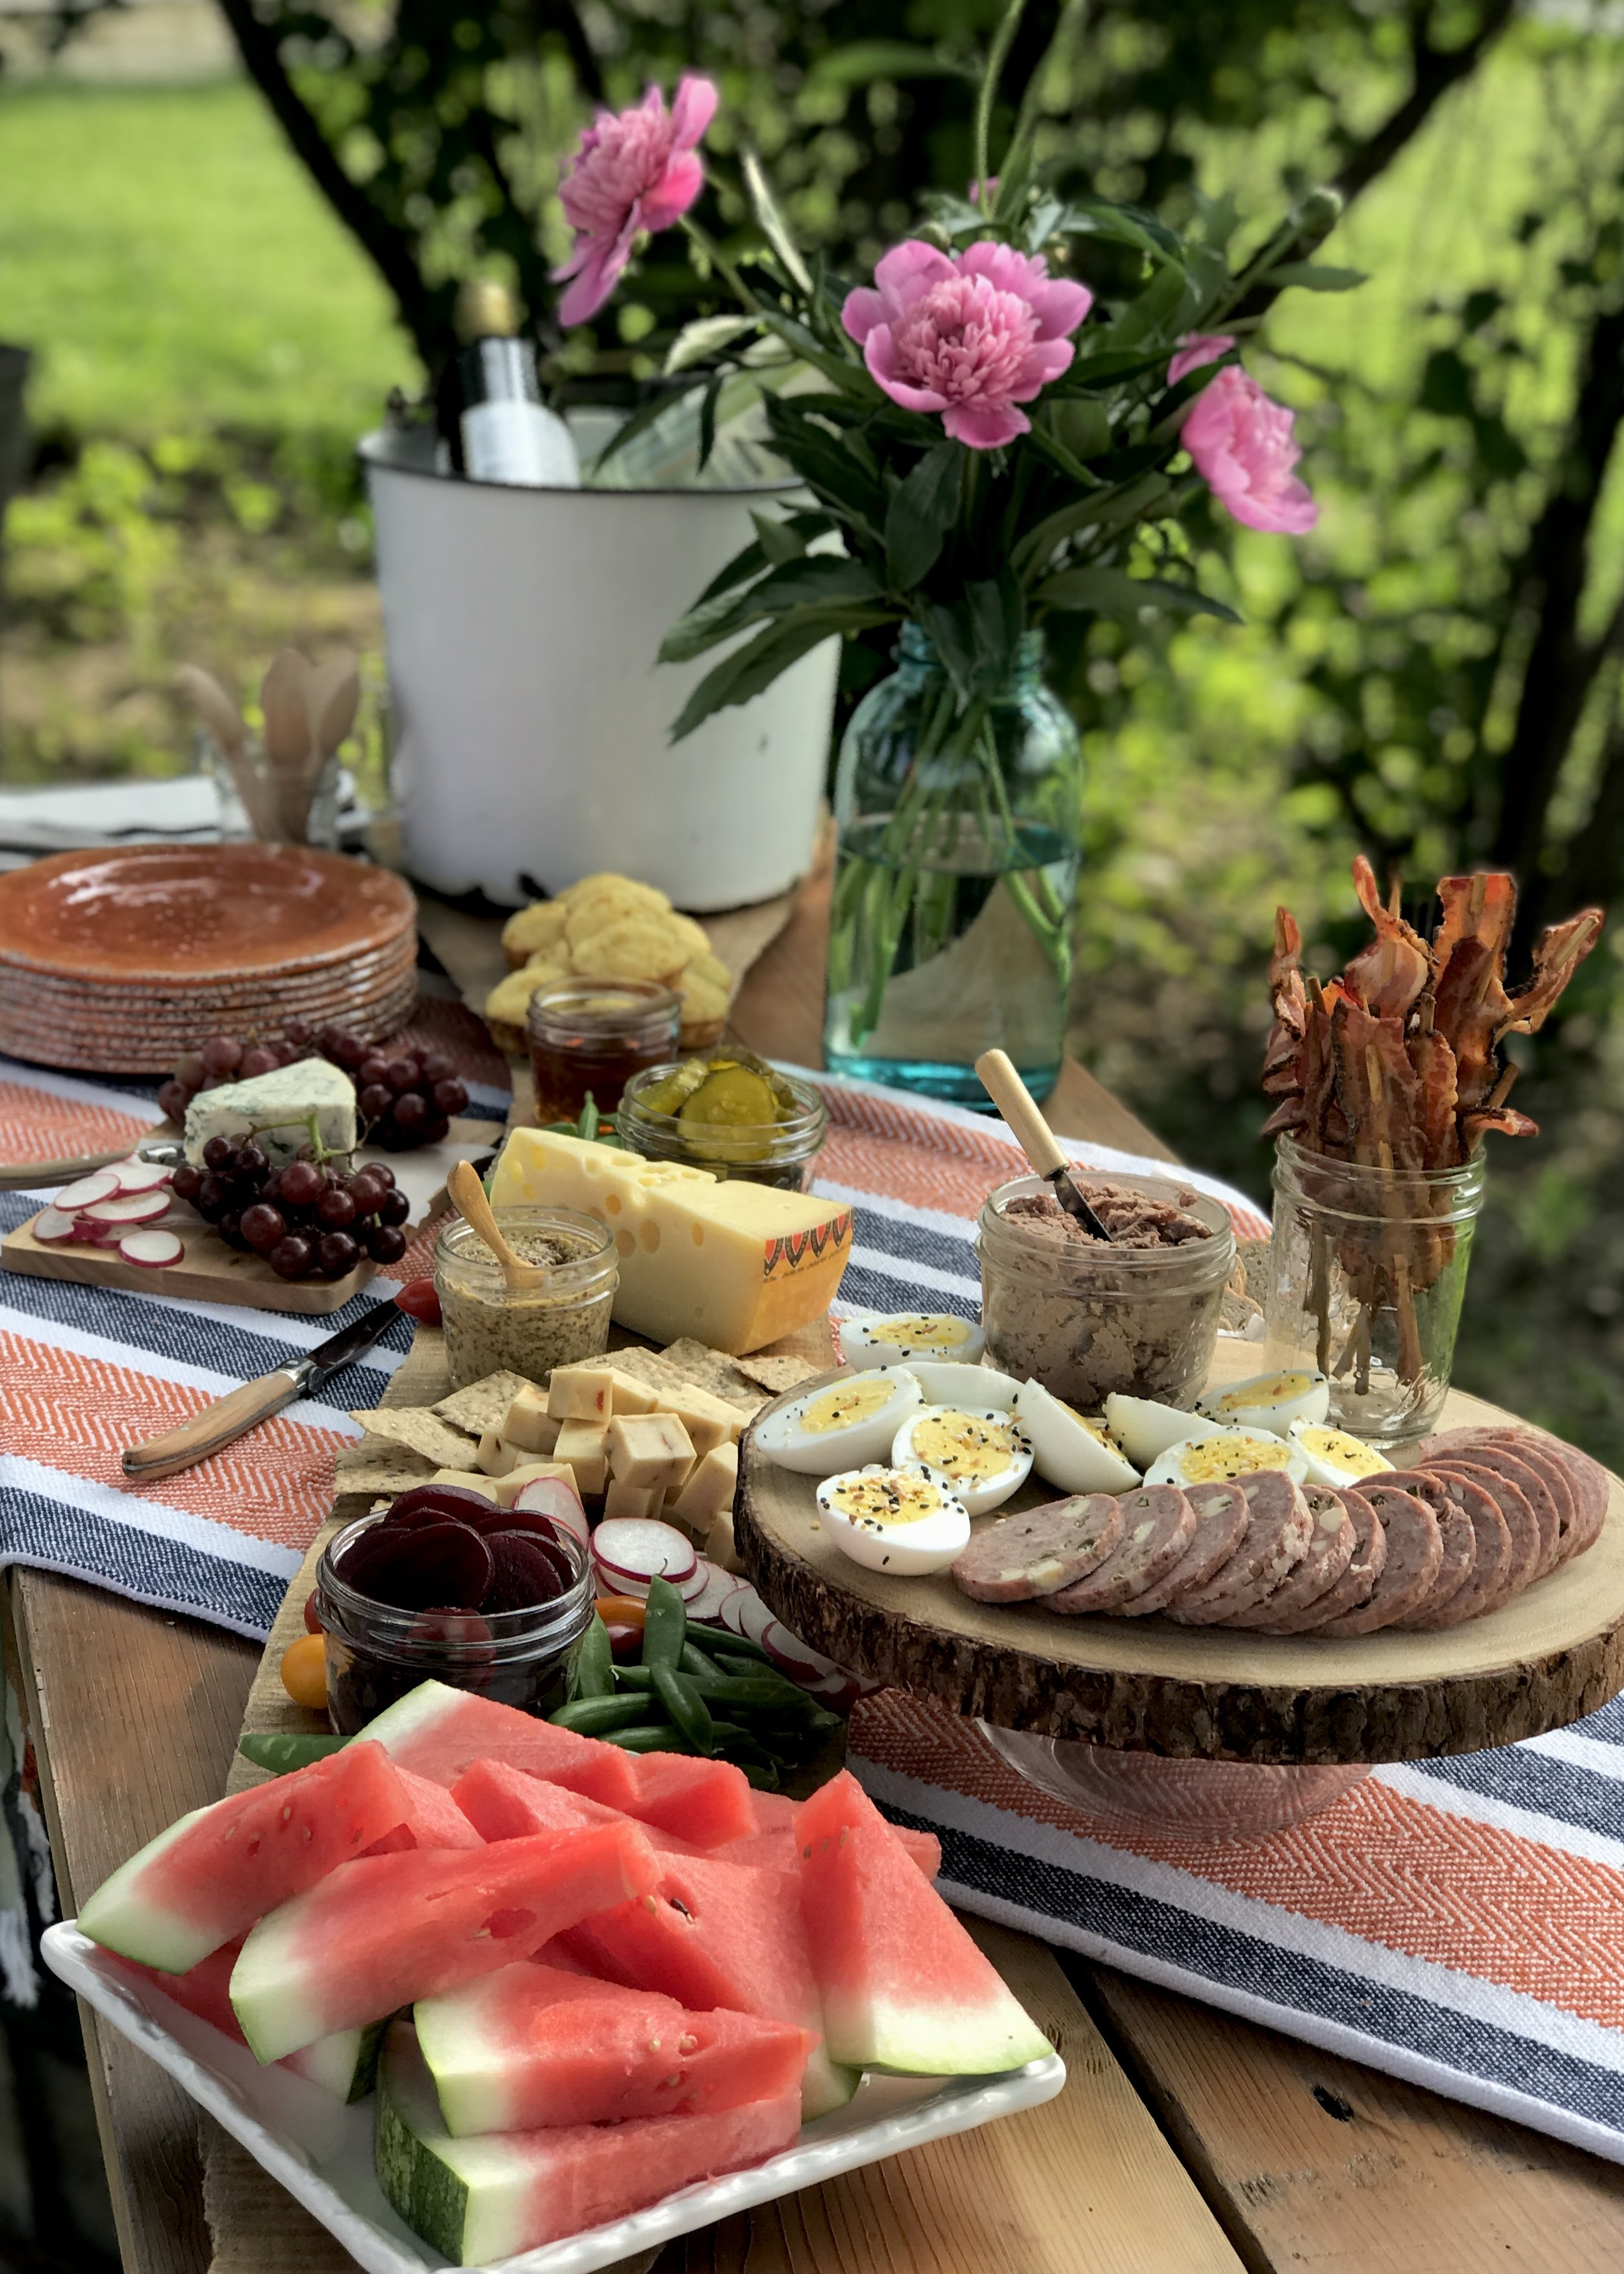 Products from Iowa meat lockers can be combined to create a unique charcuterie board. Photo credit: Anita McVey, Picnic Life Foodie